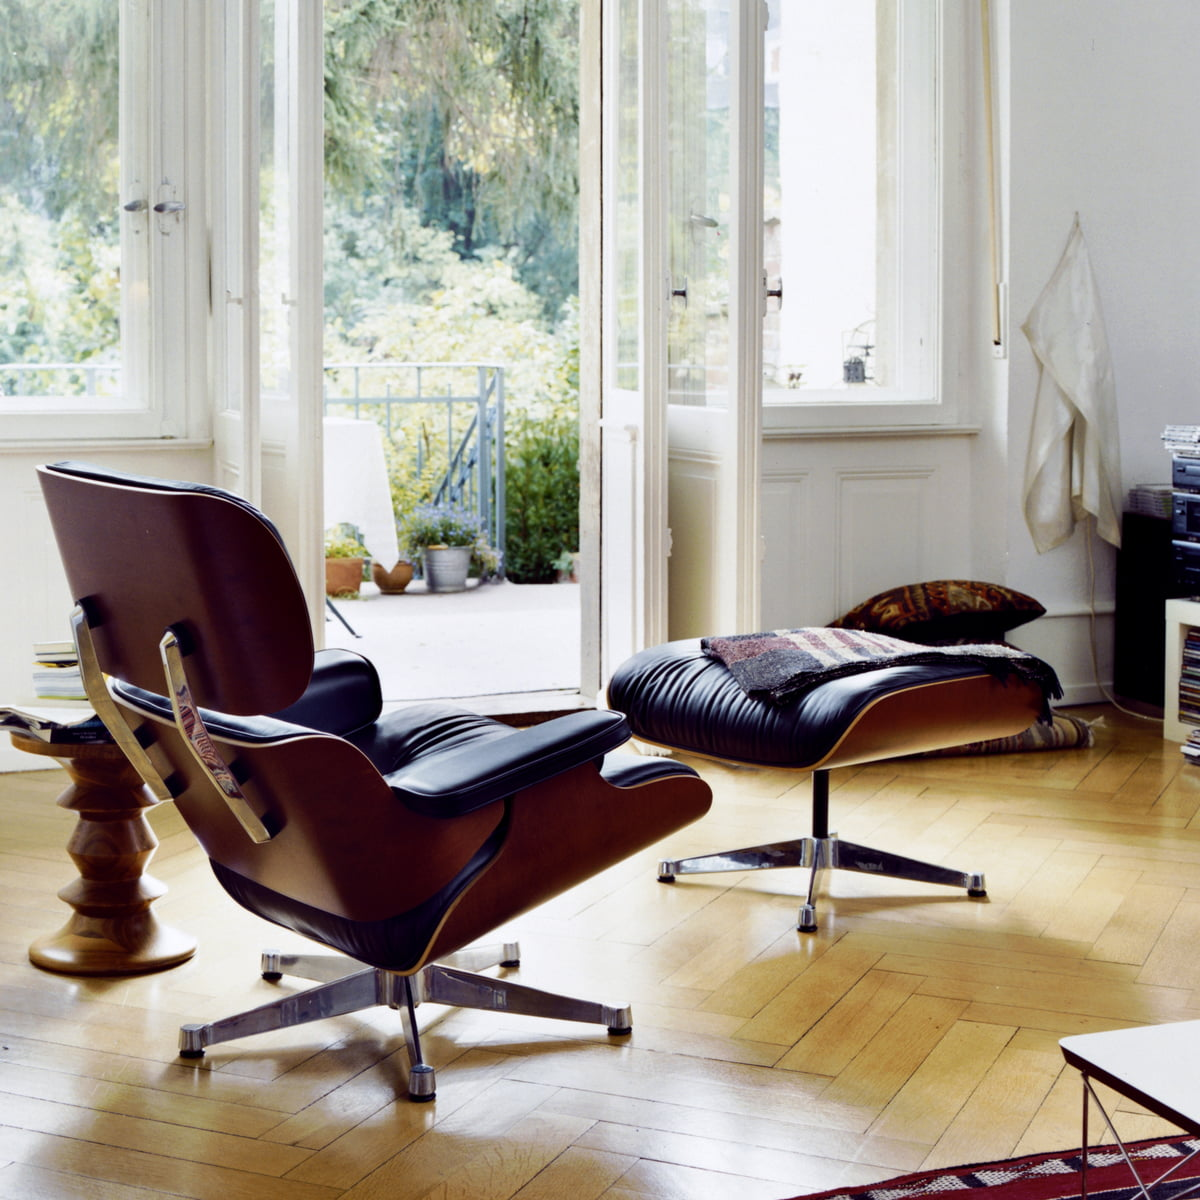 Eames lounge chair living room - Vitra Lounge Chair Ottoman Cherry Wood